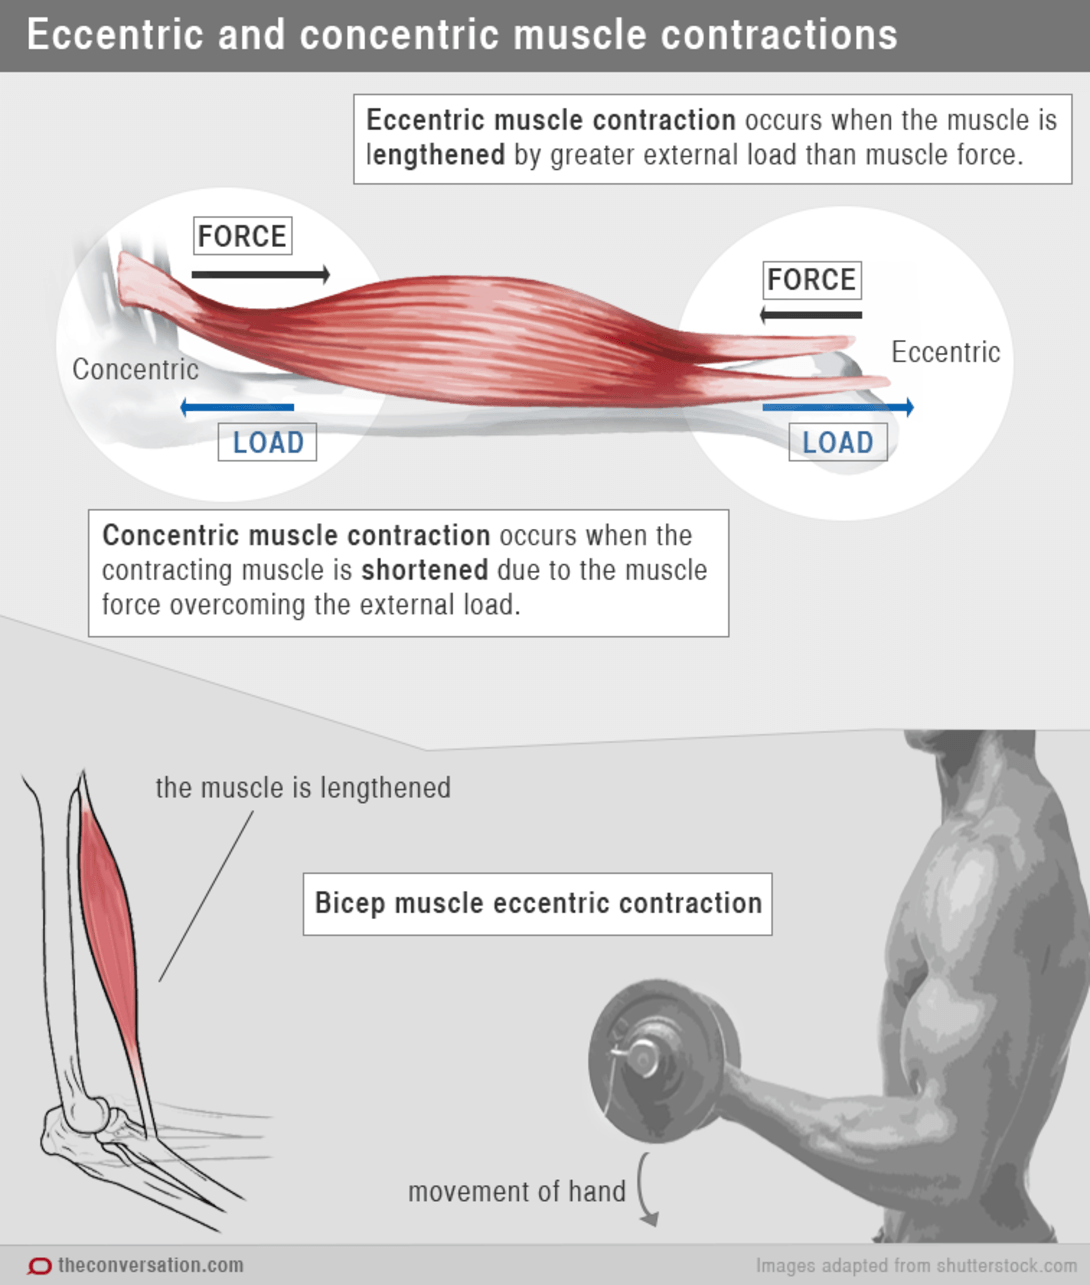 ECU | Why do my muscles ache the day after exercise? : News and ...